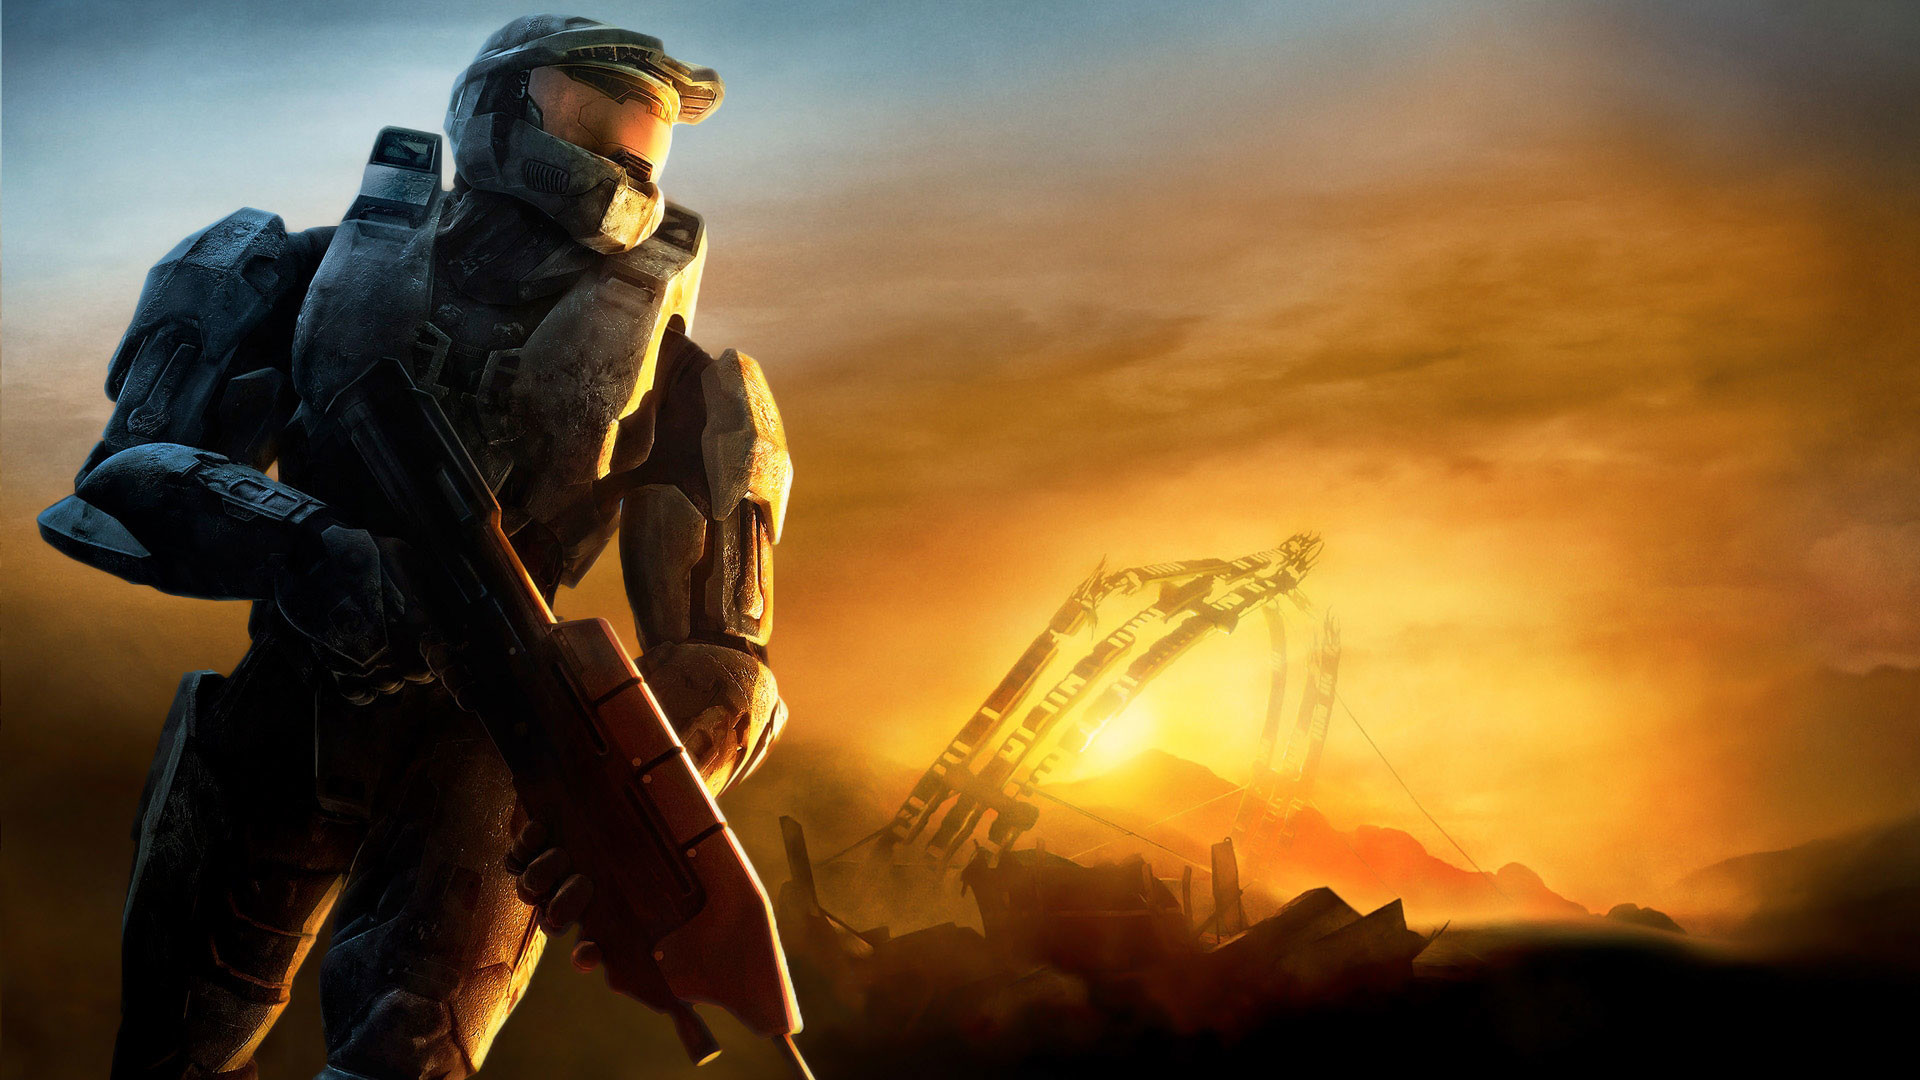 Halo Wallpaper Image Backgrounds 1080p Wallpaper with .